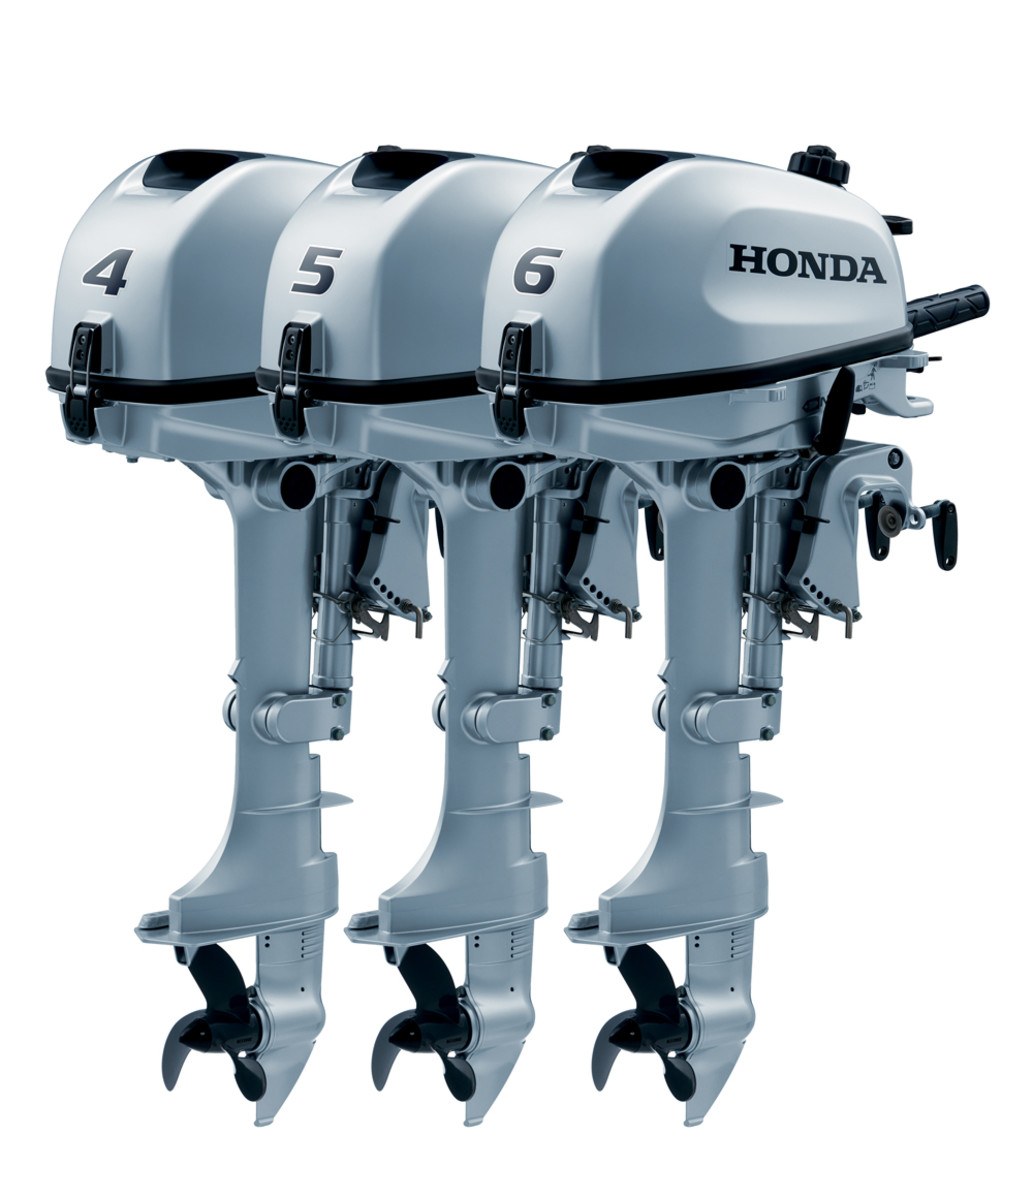 Honda Marine said all three new engines are available with either a short or long shaft.